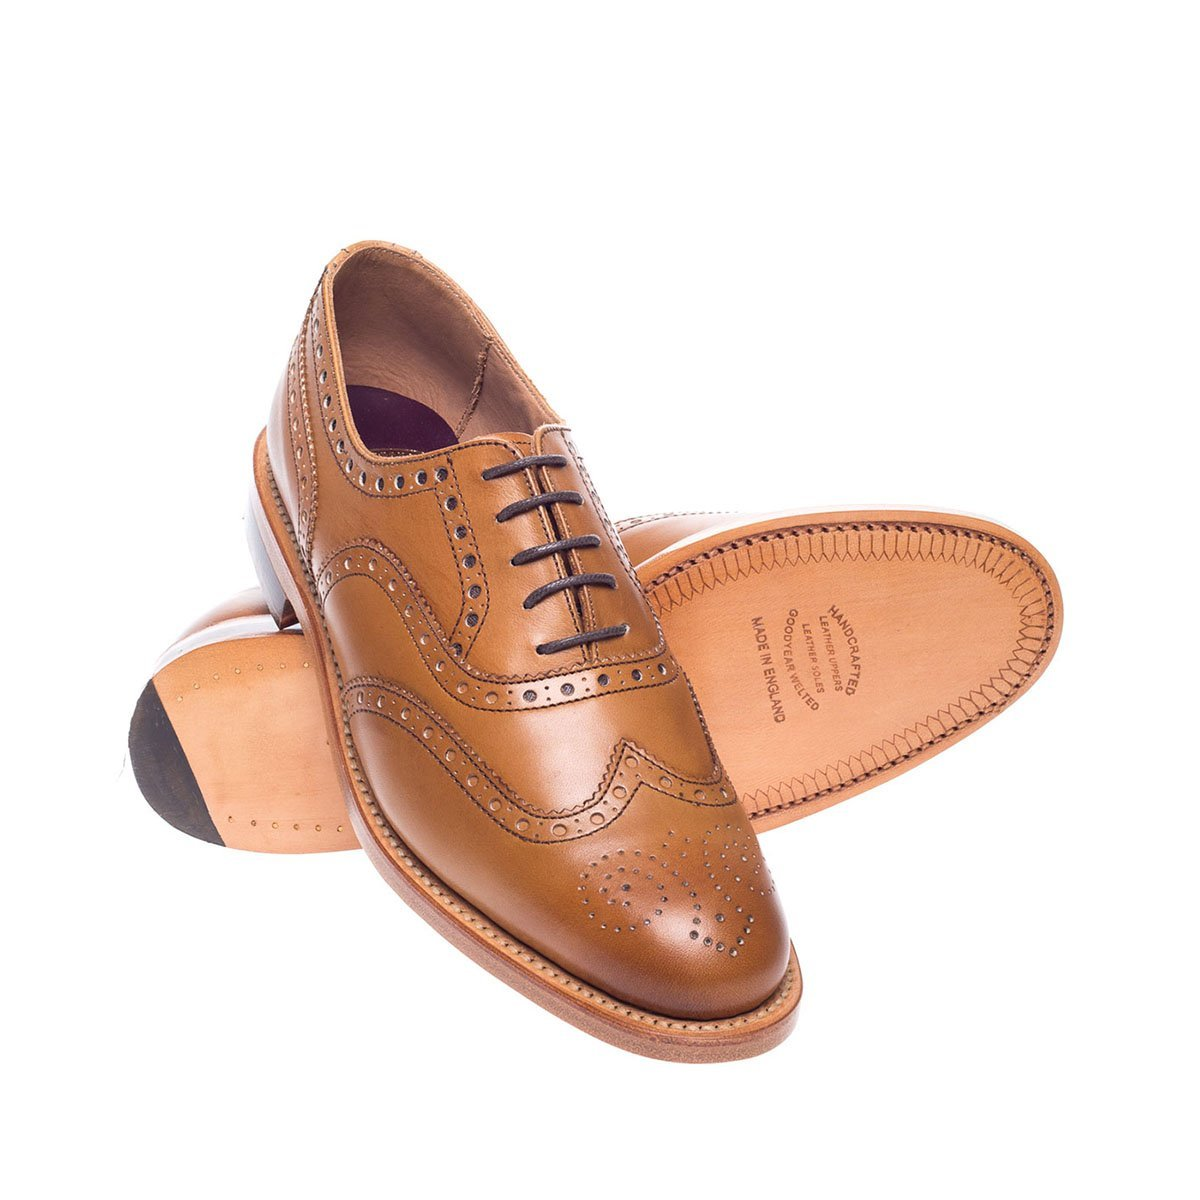 NPS Charlotte Oxford Brogue Shoe - Acorn Calf